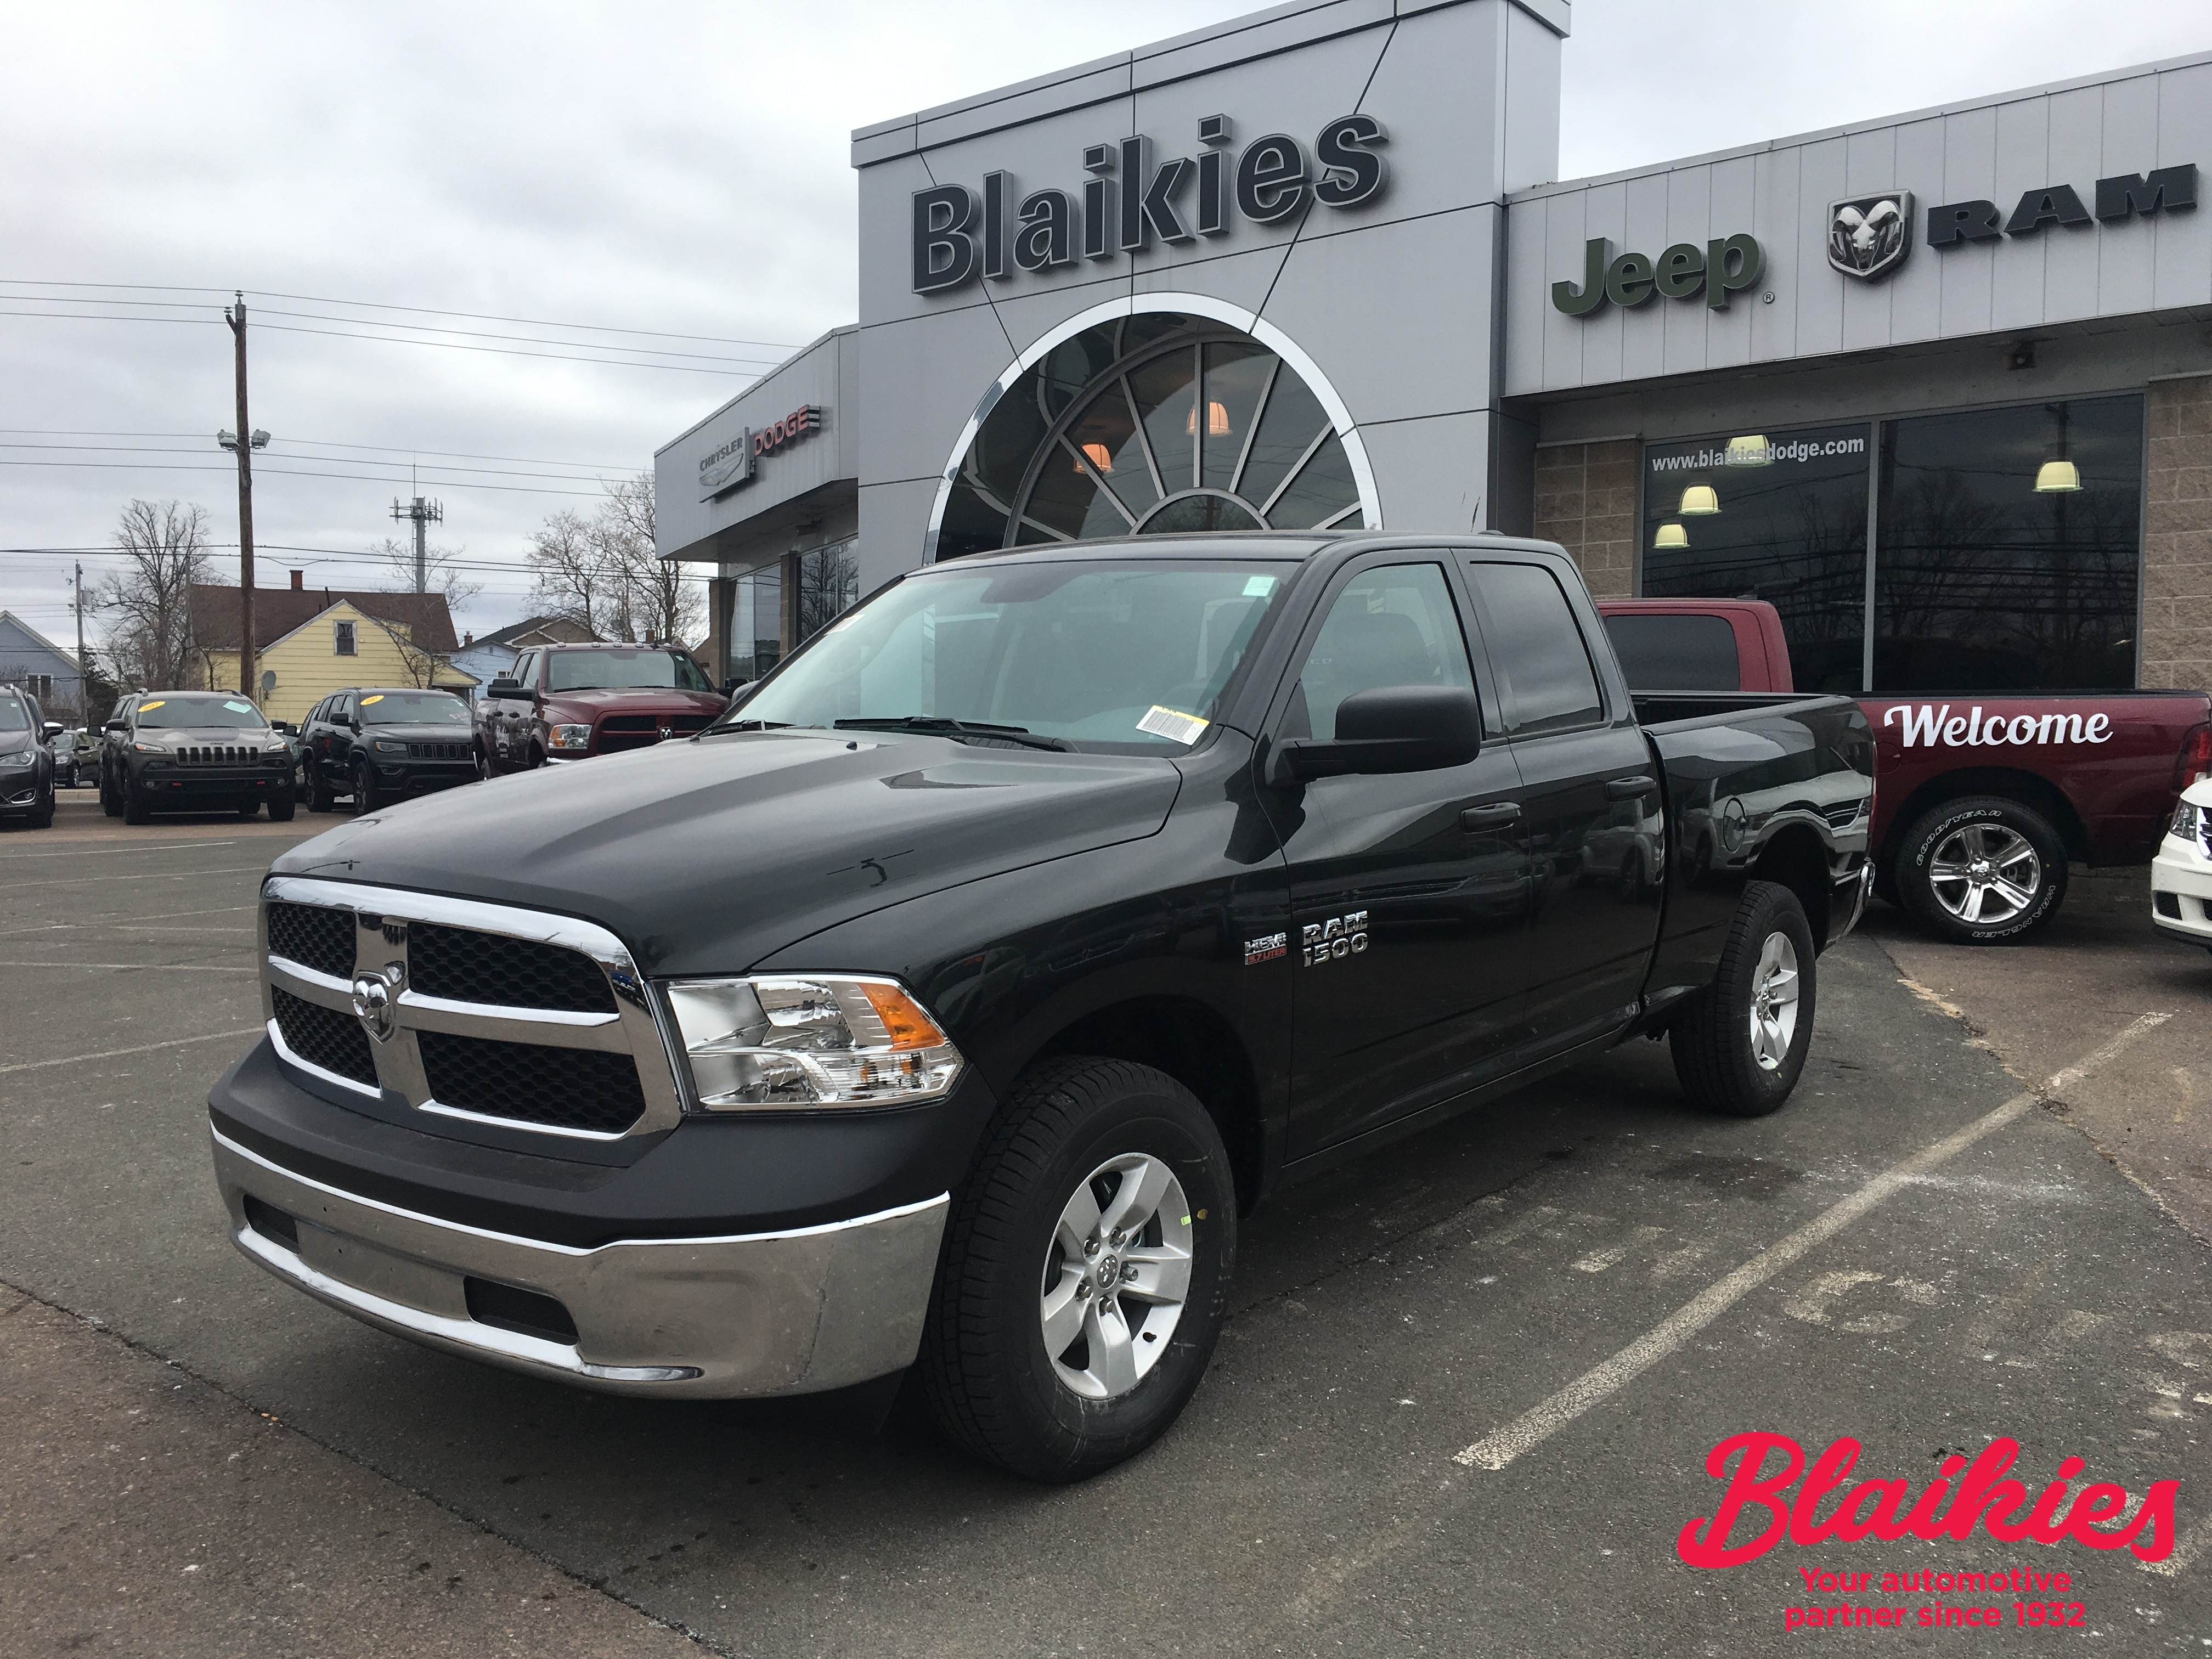 2018 Ram 1500 SXT | $29,900 + FREIGHT + ACCESSORIES + FEES | Truck Quad Cab